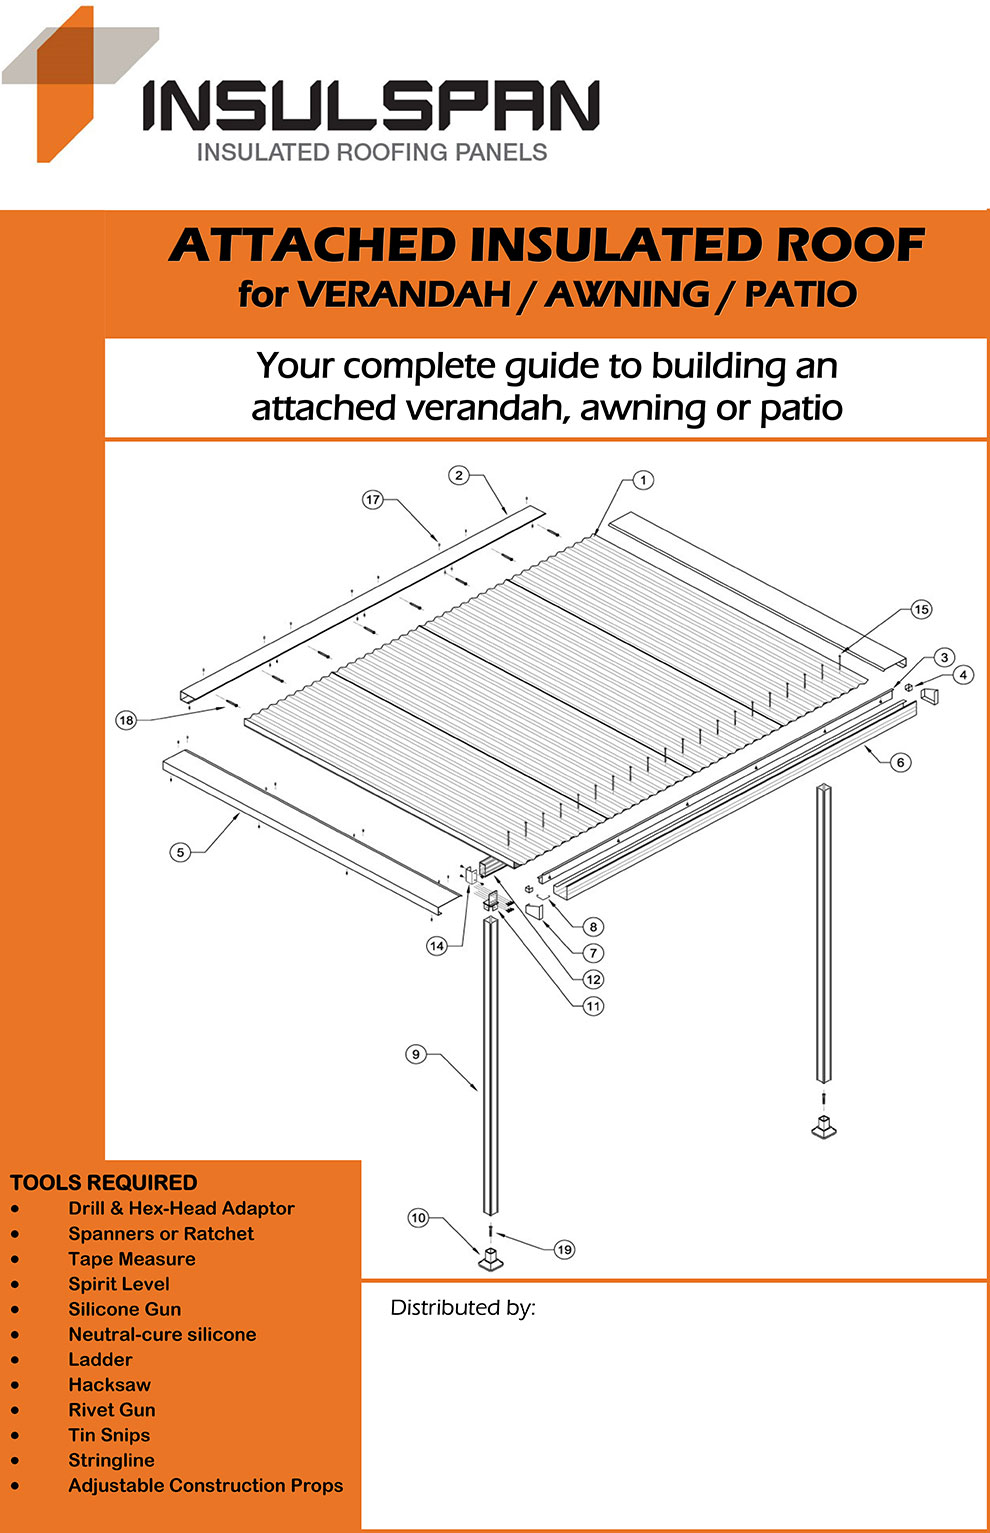 INSULSPAN insulated roofing panels - Your complete guide to building an attached insulated panel roof for verandah, awning or patio.